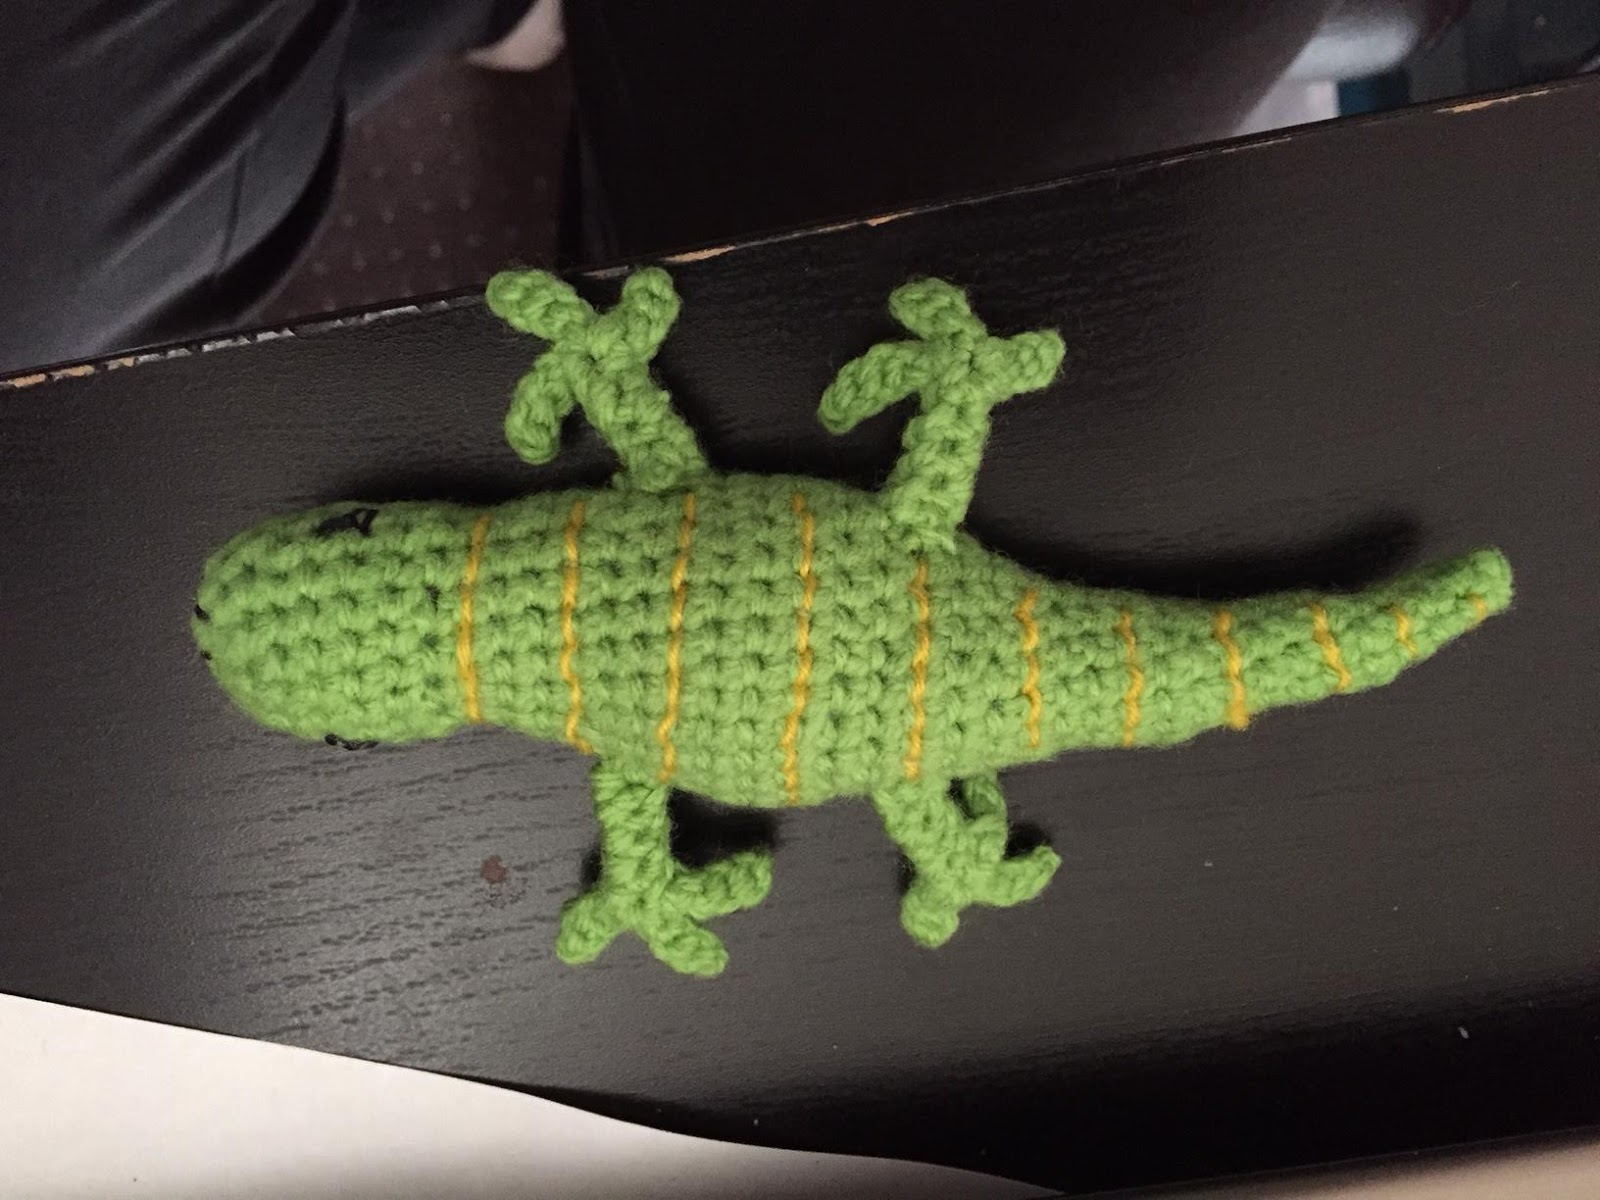 The crochet solution: Lizard